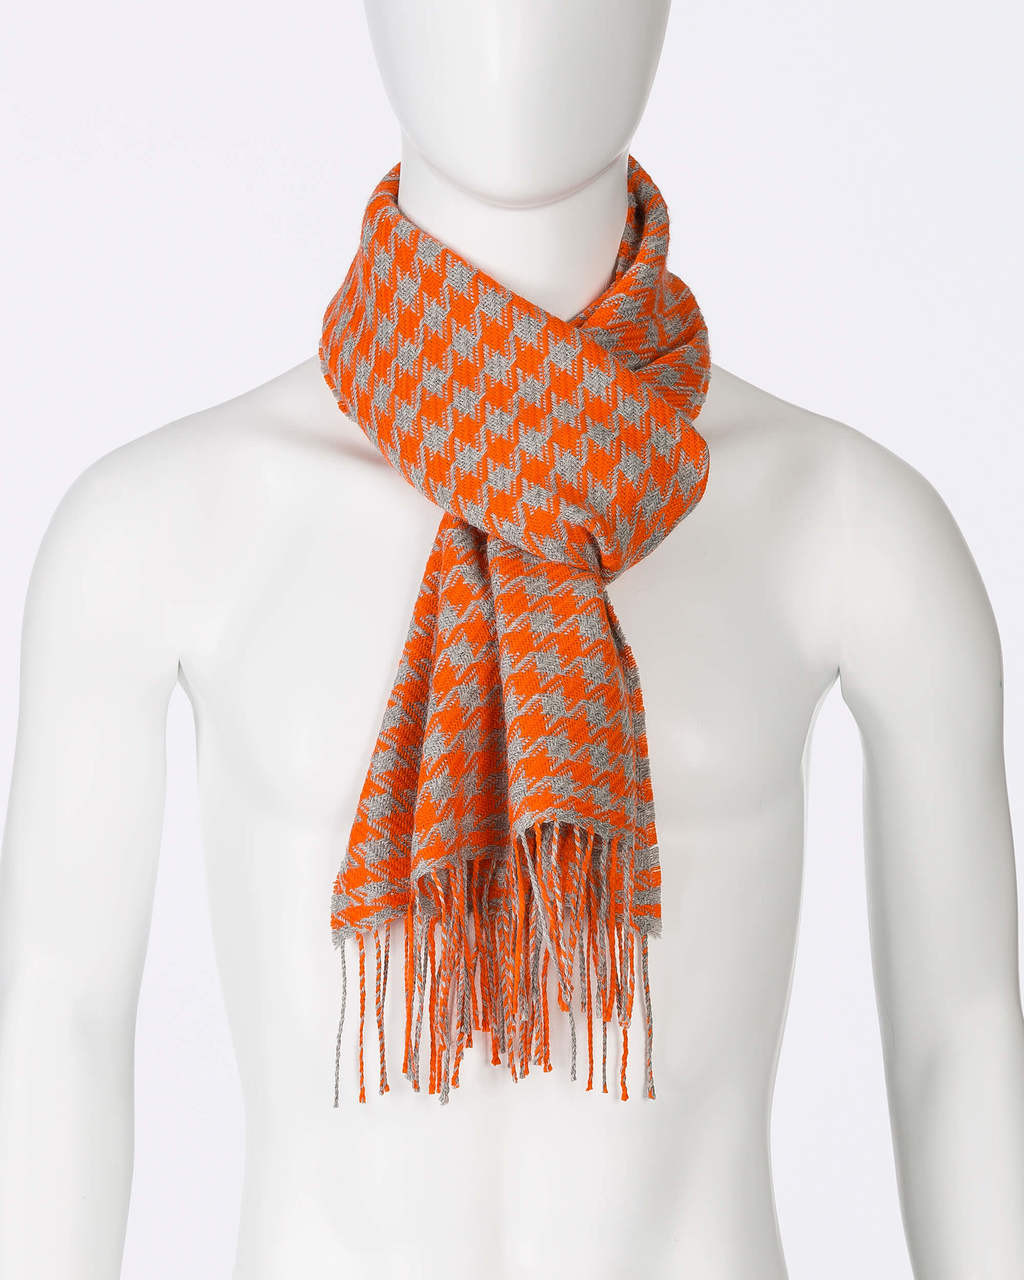 Alicia Adams Alpaca Houndstooth Scarf, alpaca scarf, 100 alpaca scarf, alpaca scarf mens, alpaca vs cashmere, orange and light grey alpaca scarf